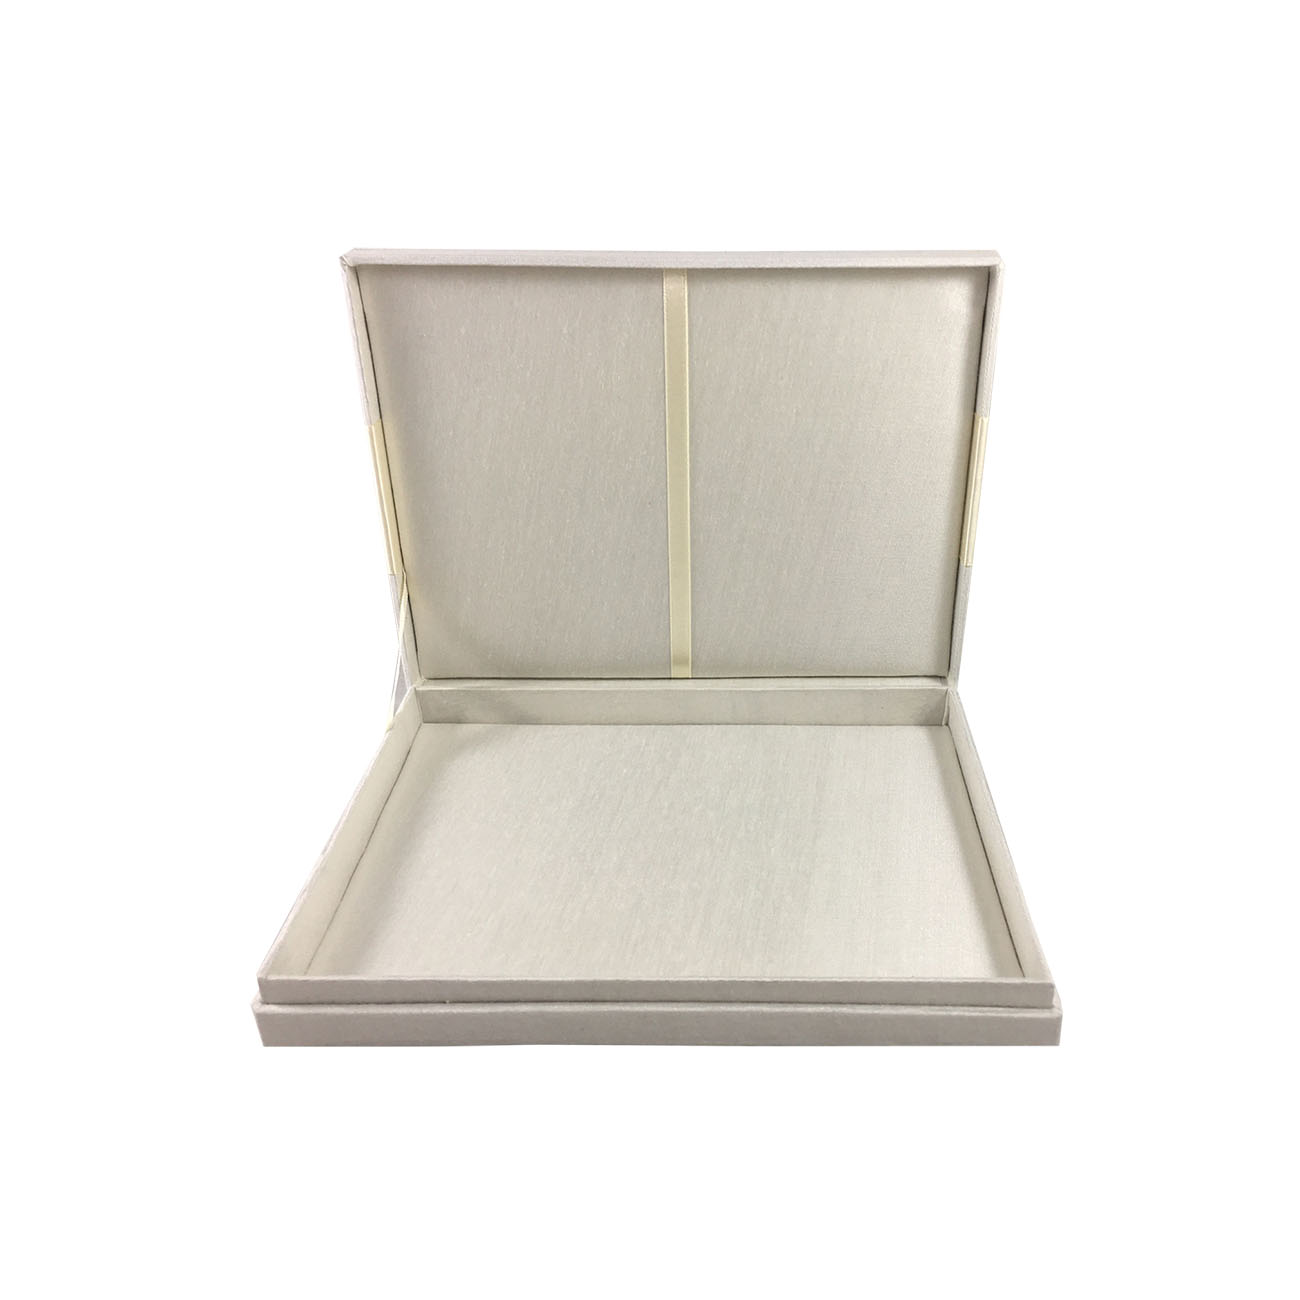 ivory boxed wedding invitation with hinged lid